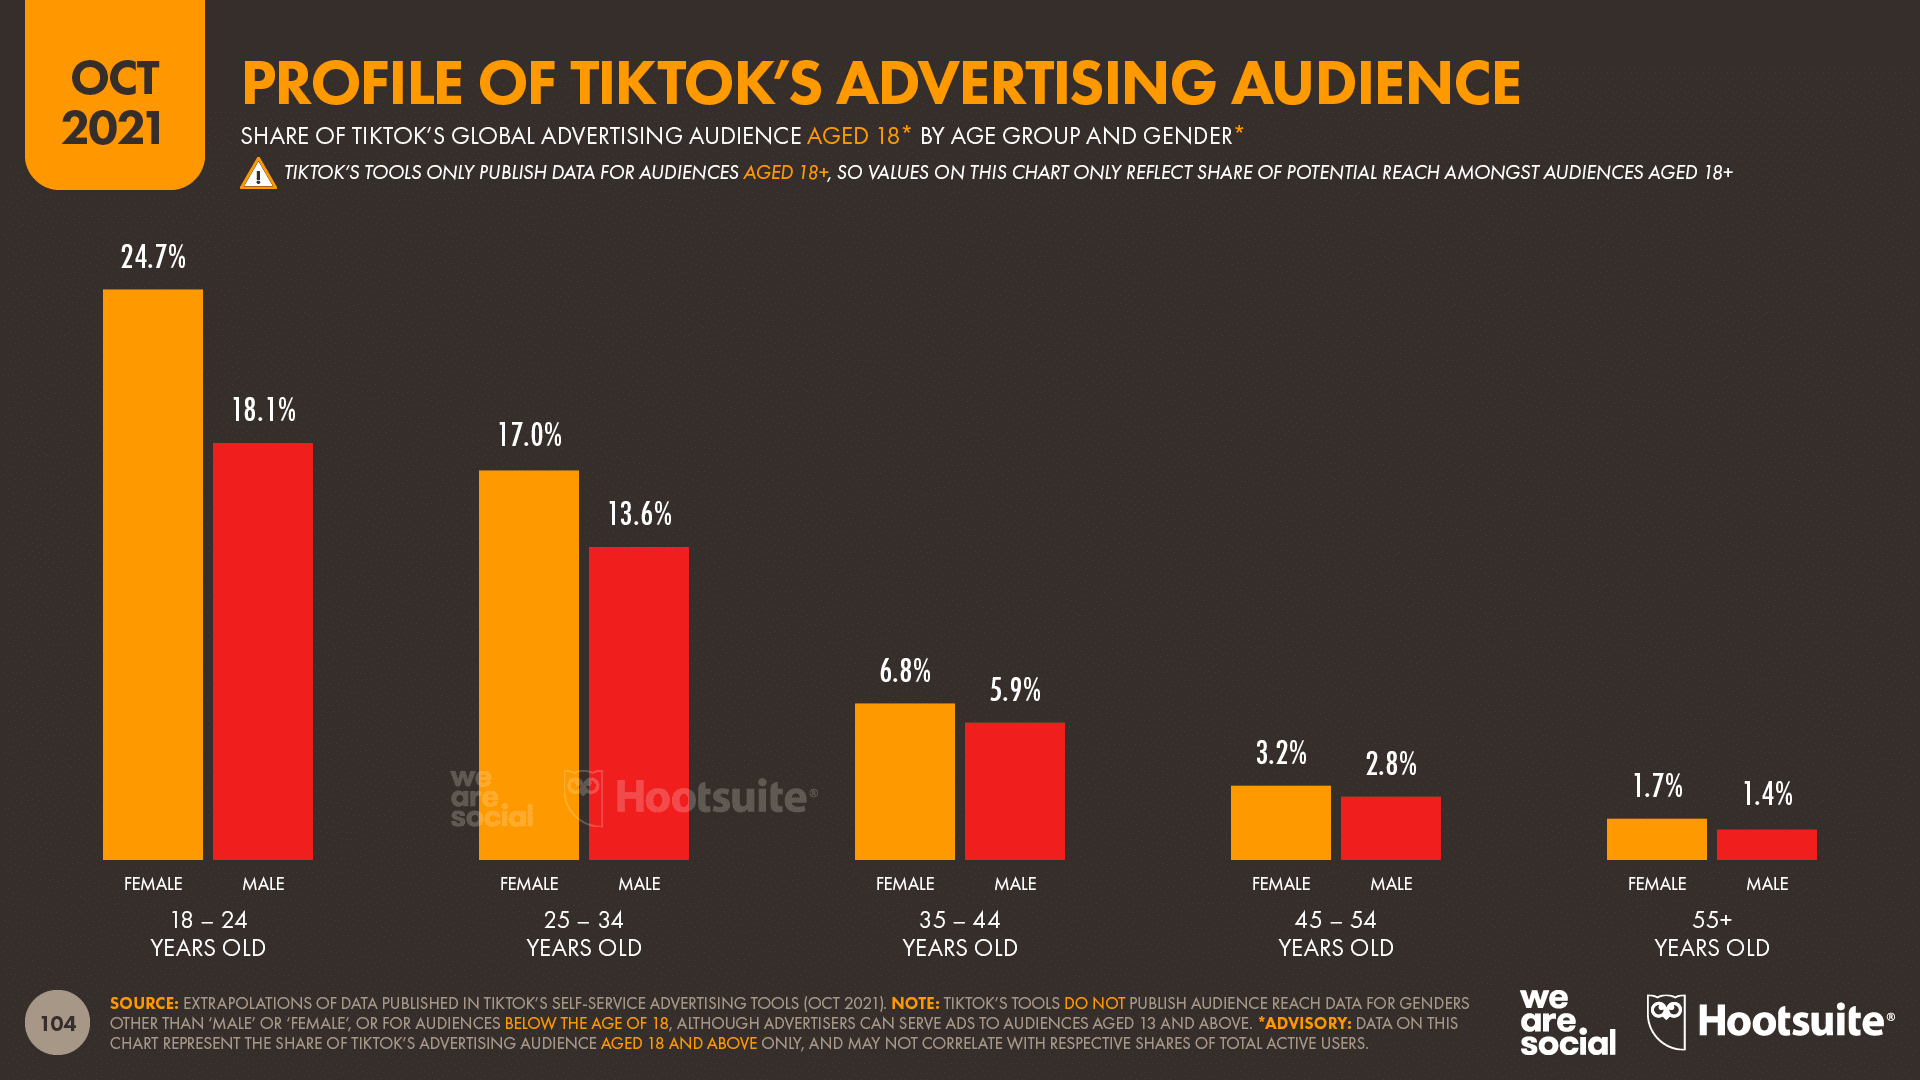 chart showing Profile of TikTok's Advertising Audience